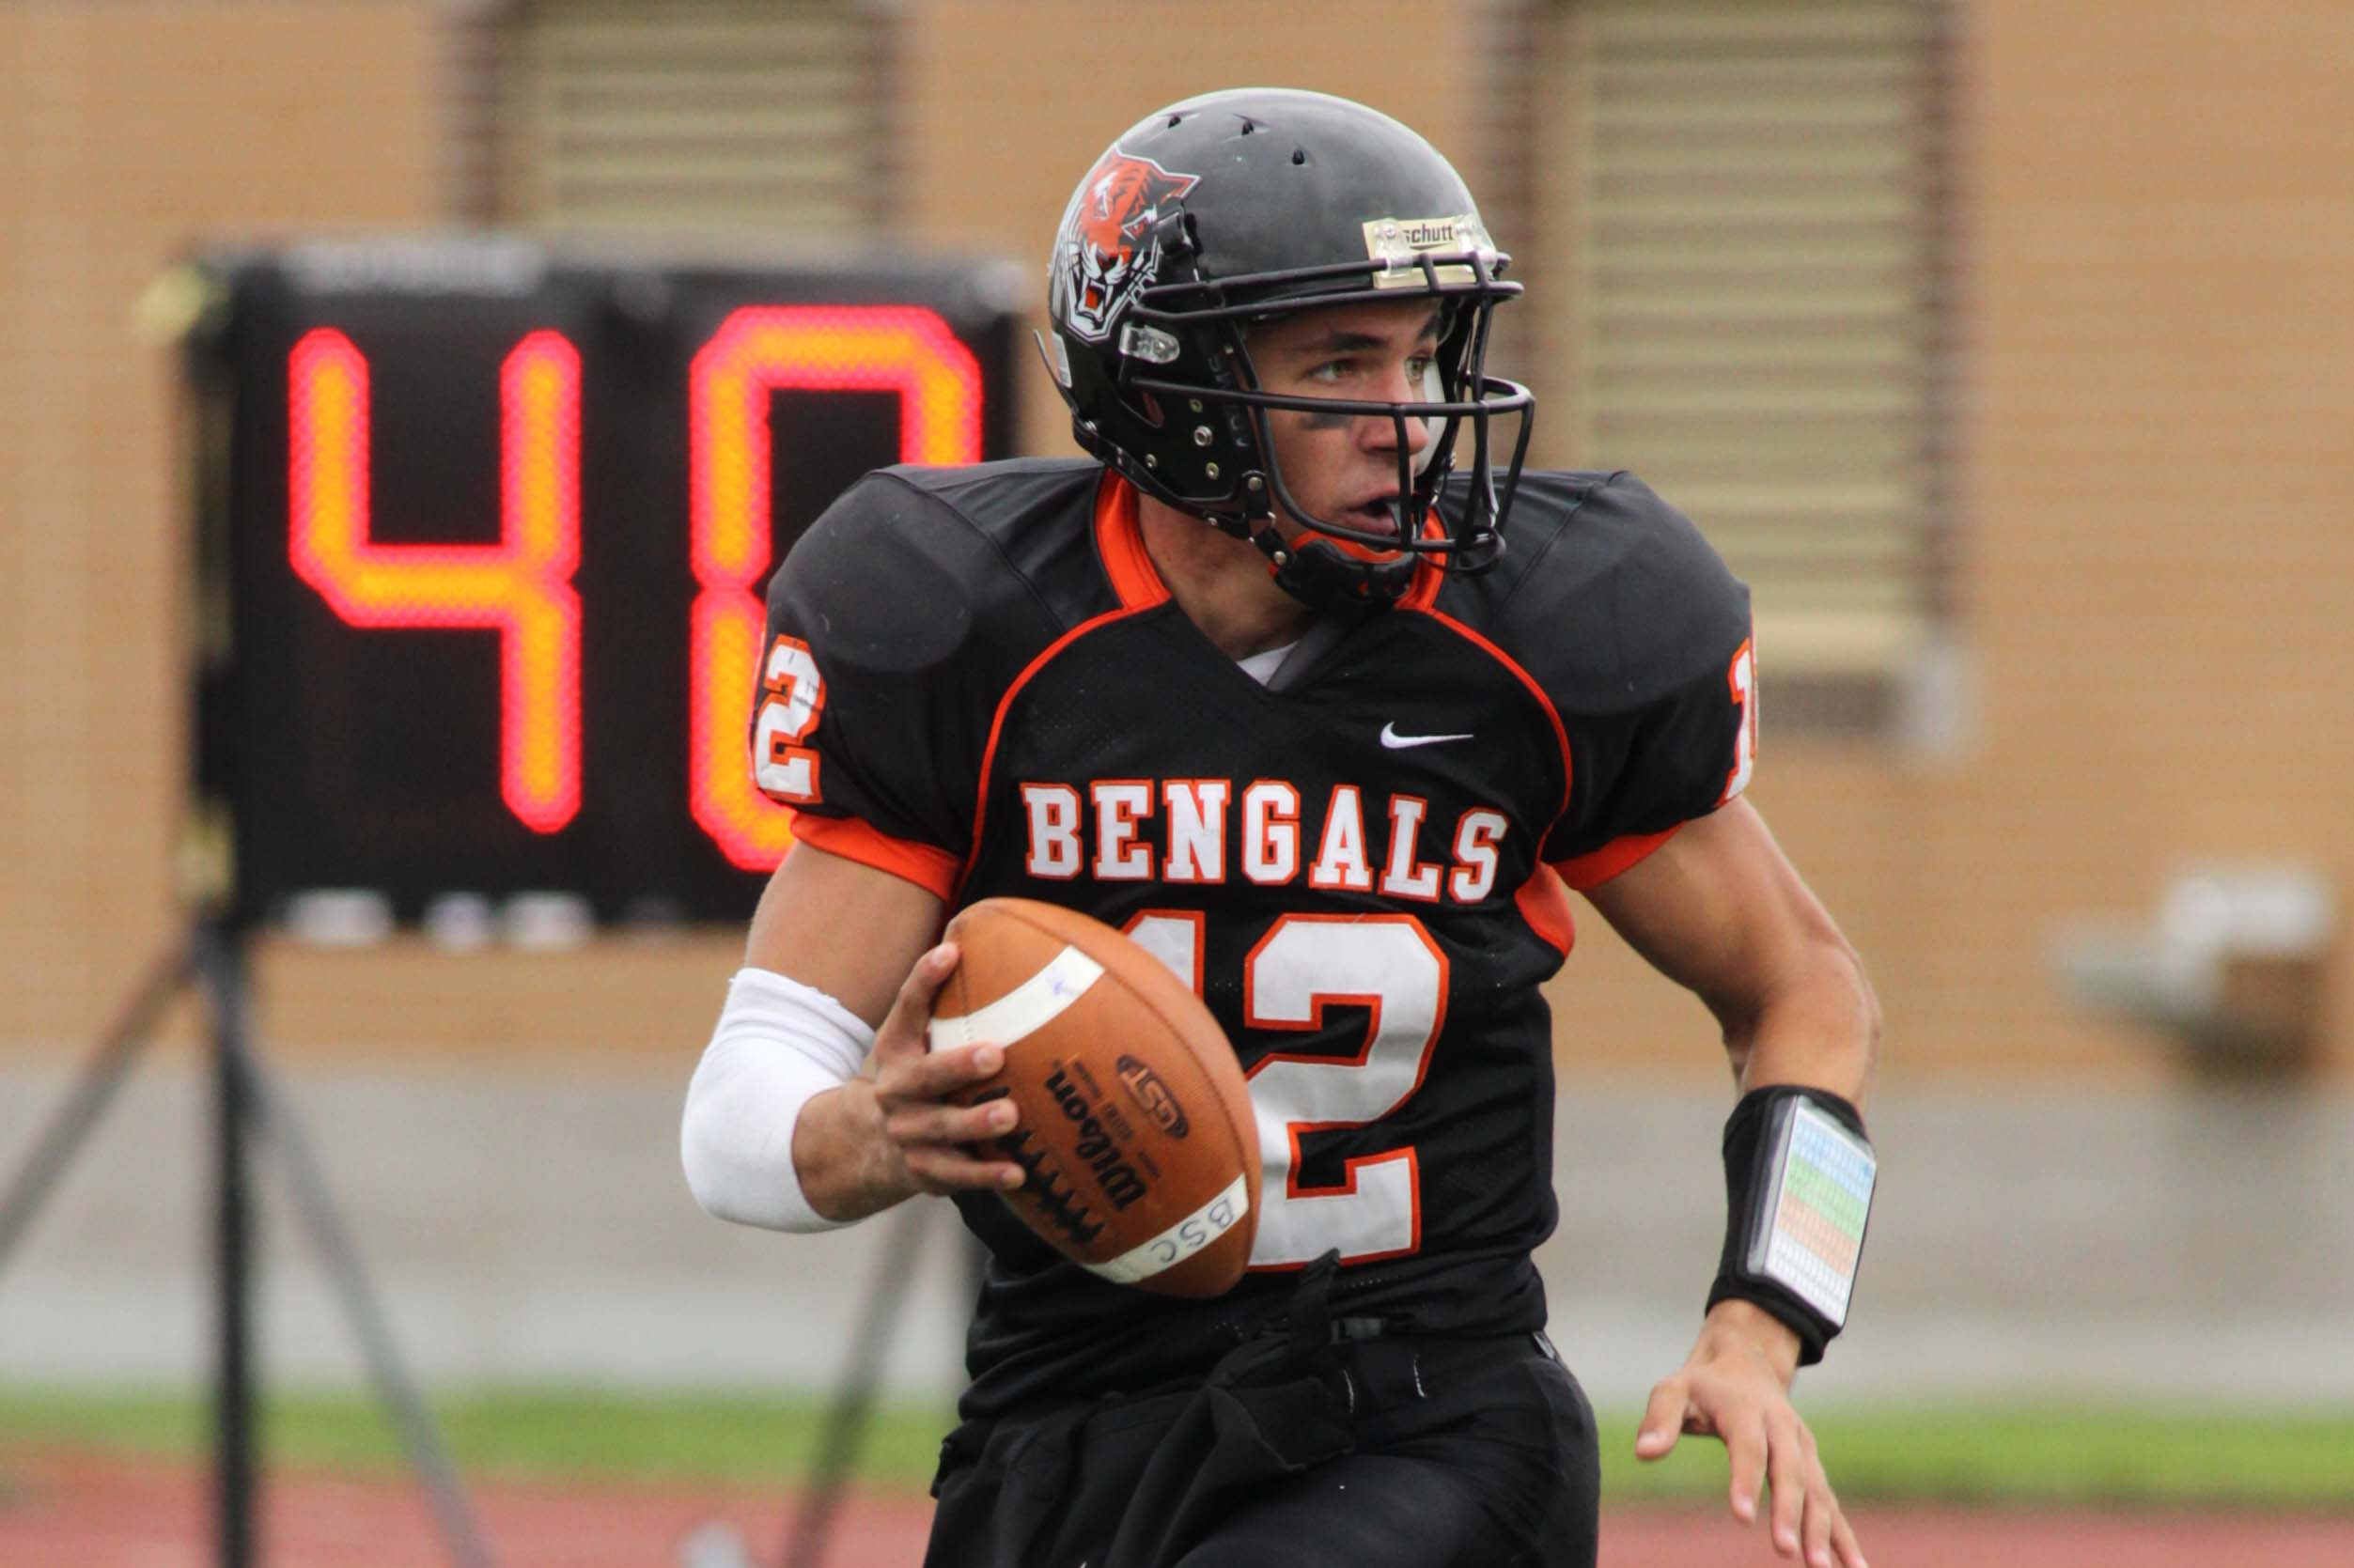 Quarterback Casey Kacz accounted for 461 yards of total offense and one touchdown in the Bengals' victory over Brockport on Saturday.